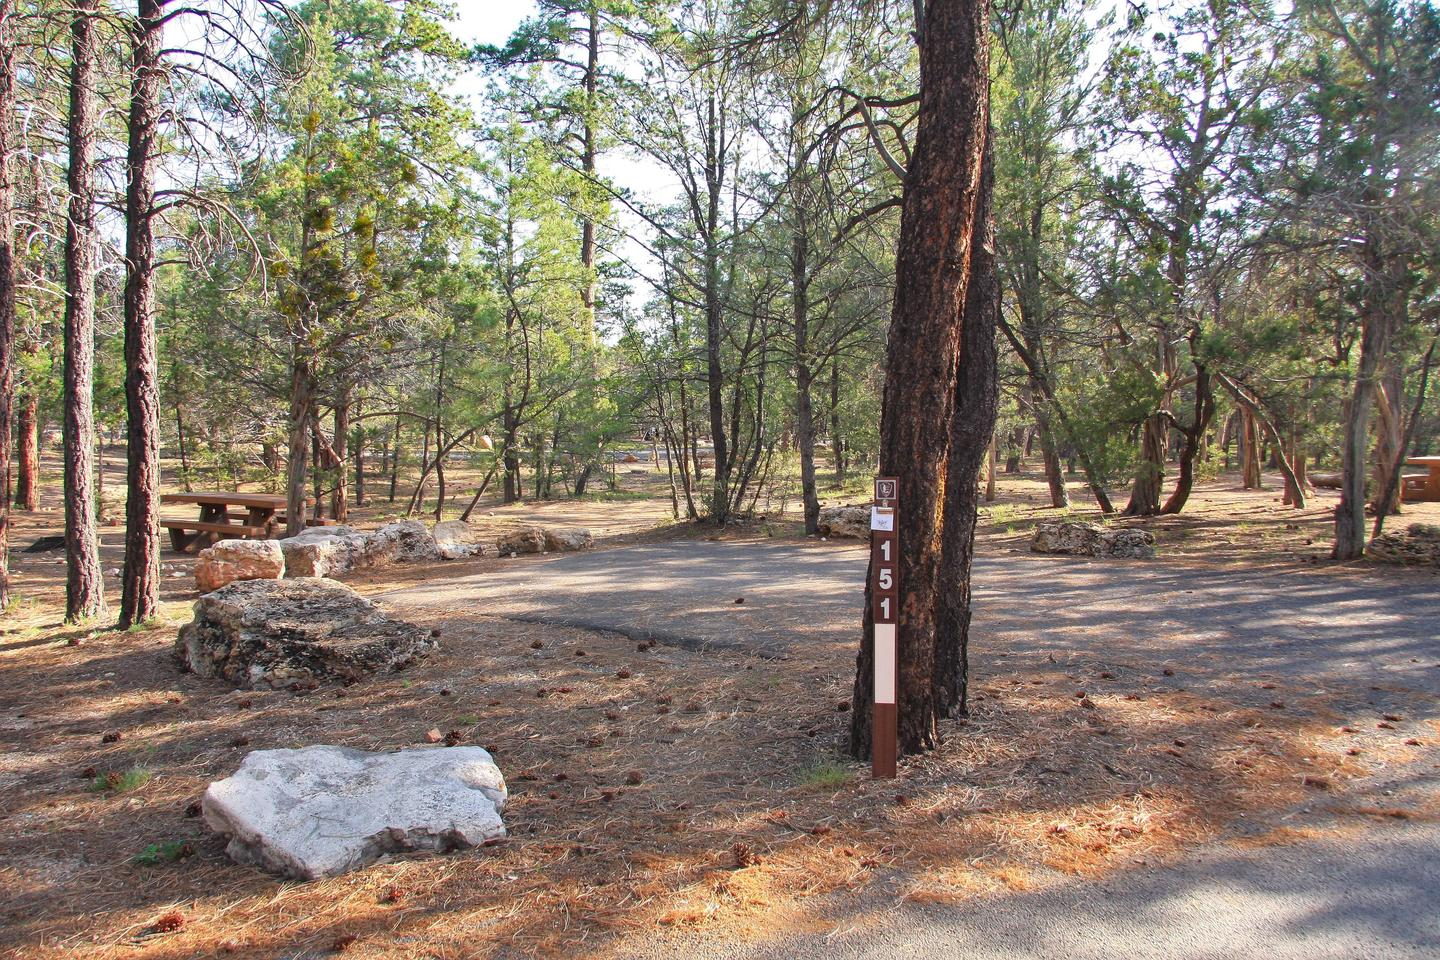 Picnic table, fire pit, tent, and parking spot, Mather Campground